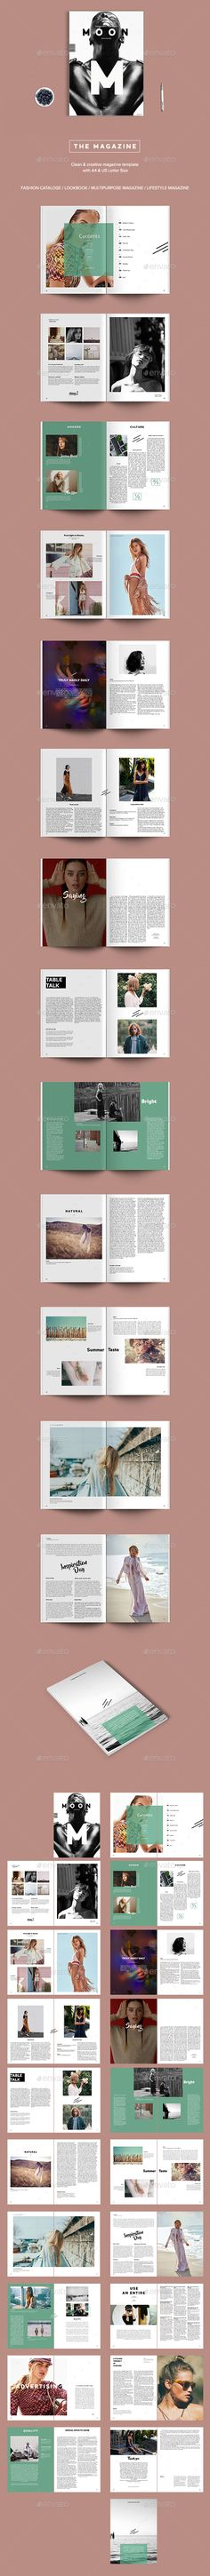 Buy The Magazine by Viktoribat on GraphicRiver. The Simple / Fashion / Creative Magazine is a 40 page Indesign brochure template available in both and US letter s. Graphic Design Layouts, Brochure Design, Layout Design, Set Design, Editorial Layout, Editorial Design, Editorial Fashion, Magazine Cover Template, Magazine Covers